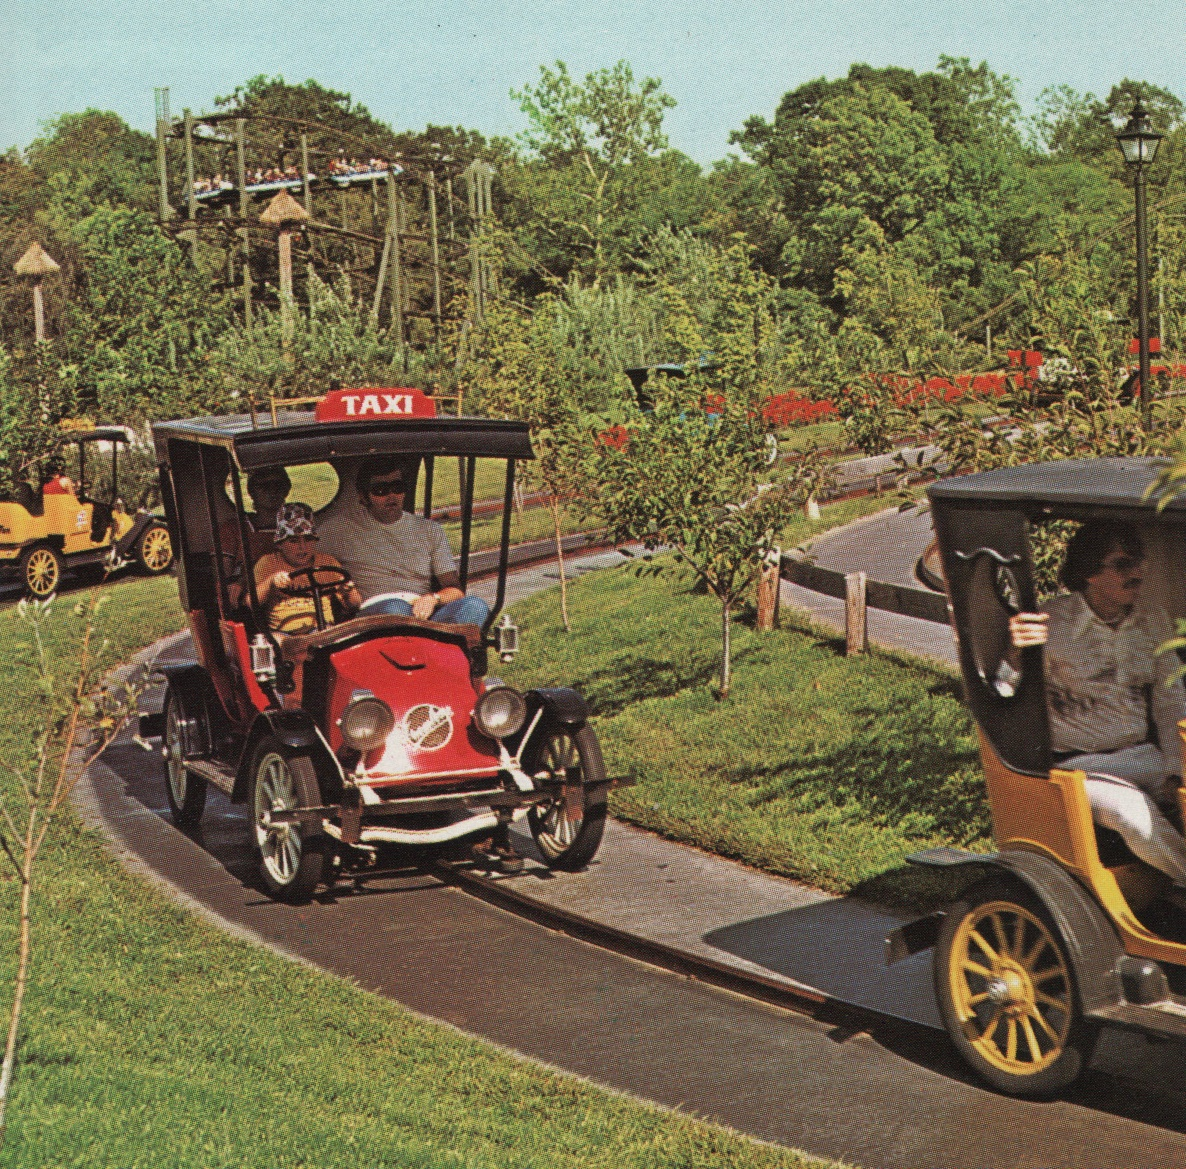 Worlds of Fun.Org: 9 Old Rides: The Original Rides from 1973